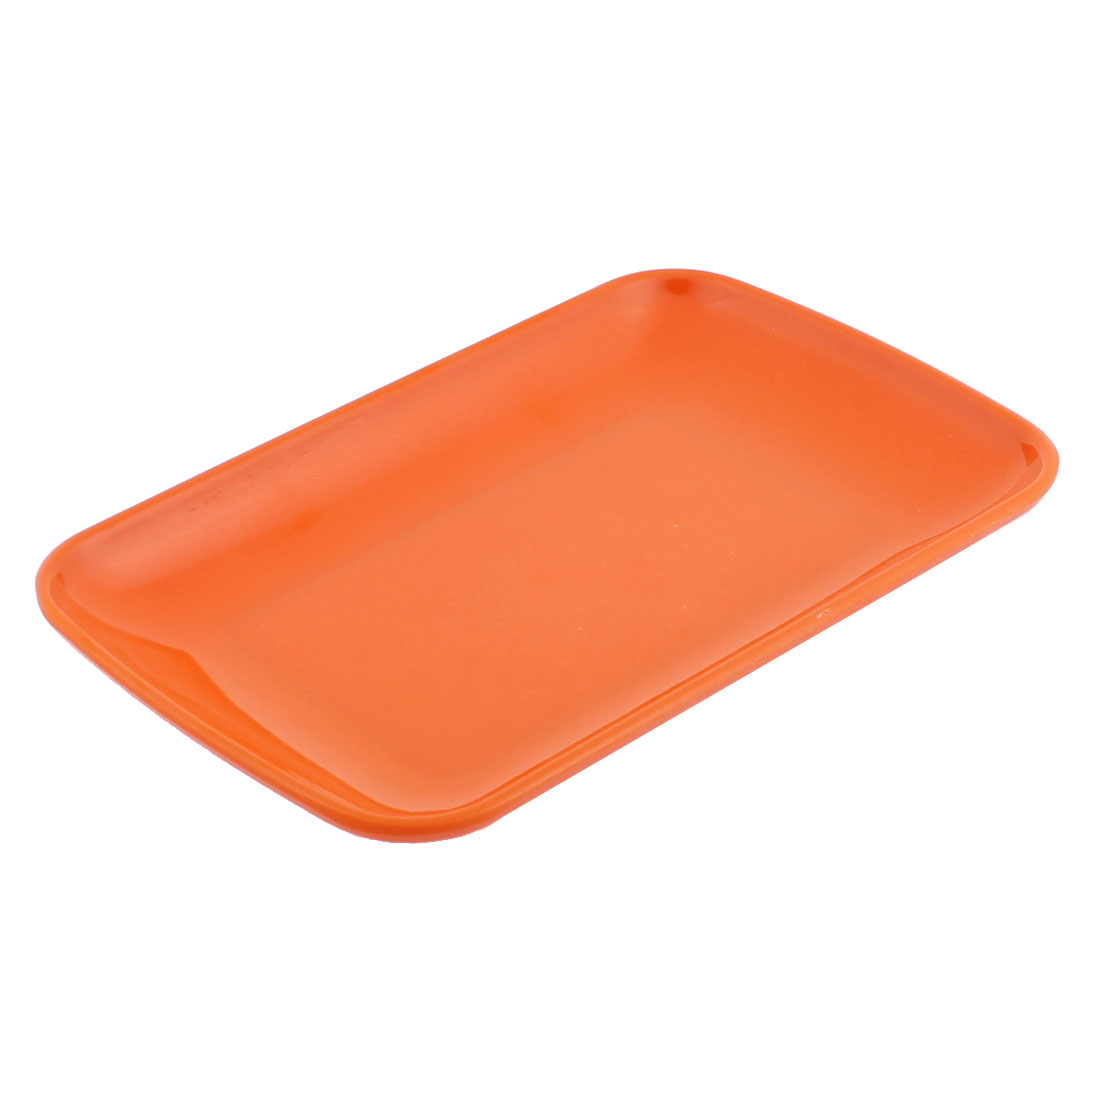 Plastic Rectangle Shape Dinner Dessert Vermicelli Plate Dish Orange